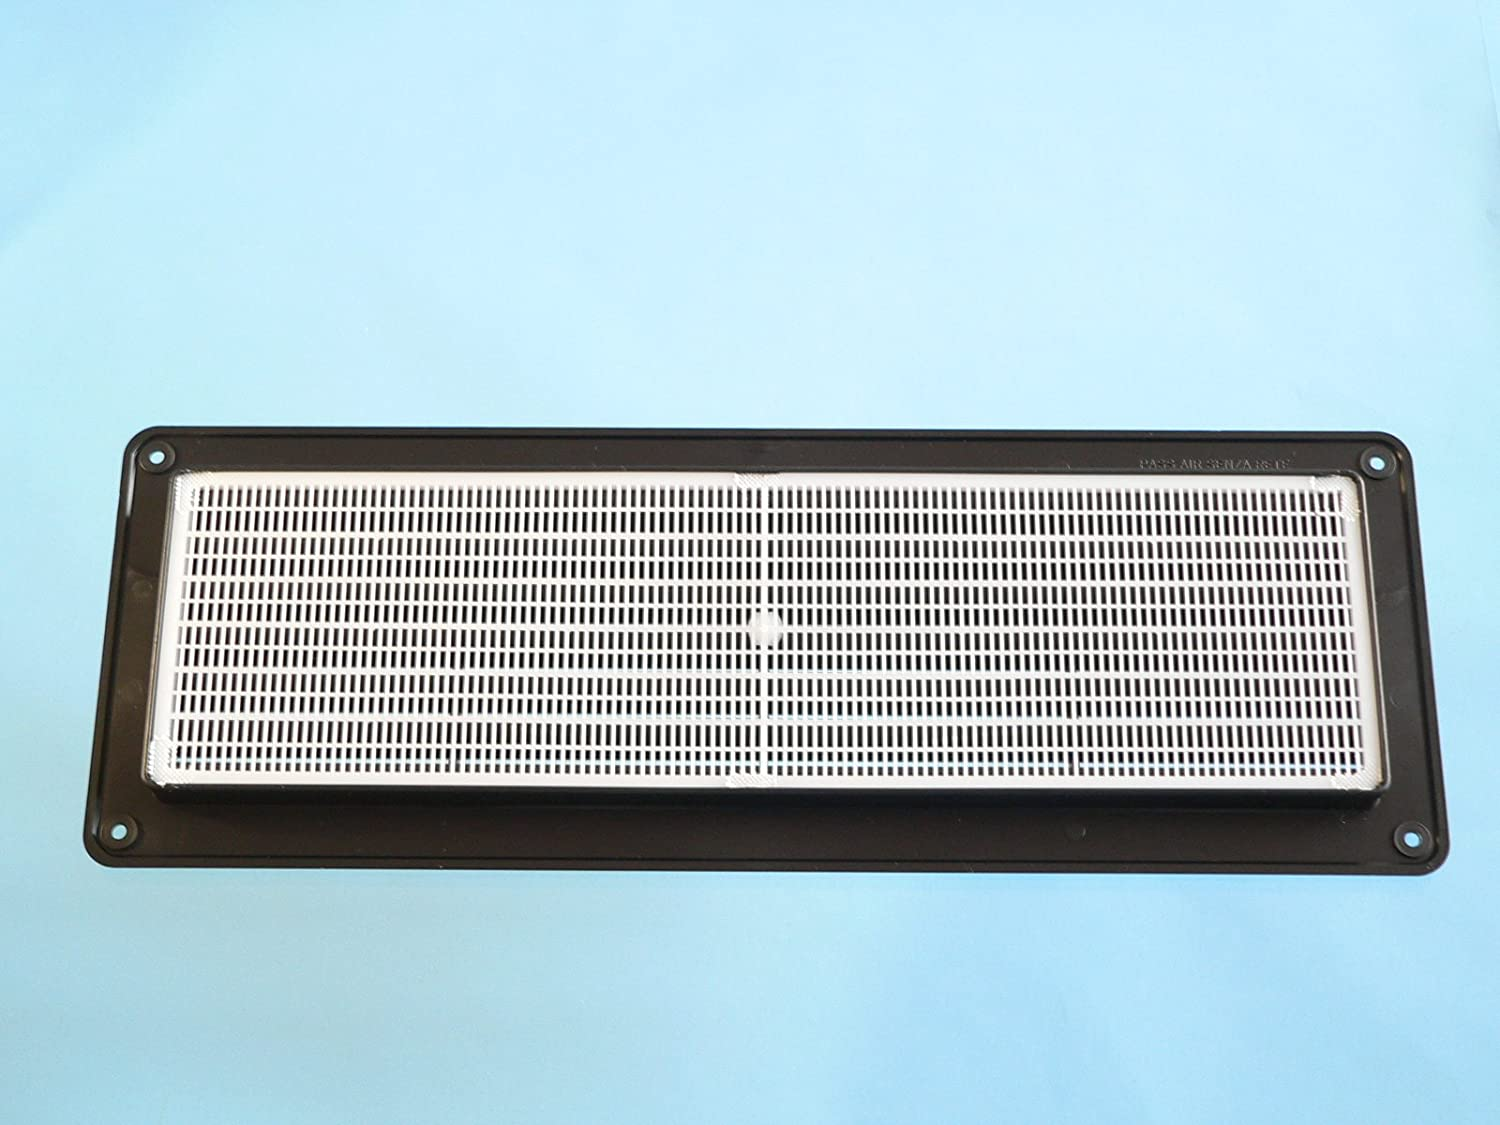 FLUSH FITTING RECTANGULAR PLASTIC AIR VENT WITH INSECT//MOSQUITO NET 370mm x 130mm x 20mm available in WHITE BROWN BLACK Suitable for internal an external use. Black